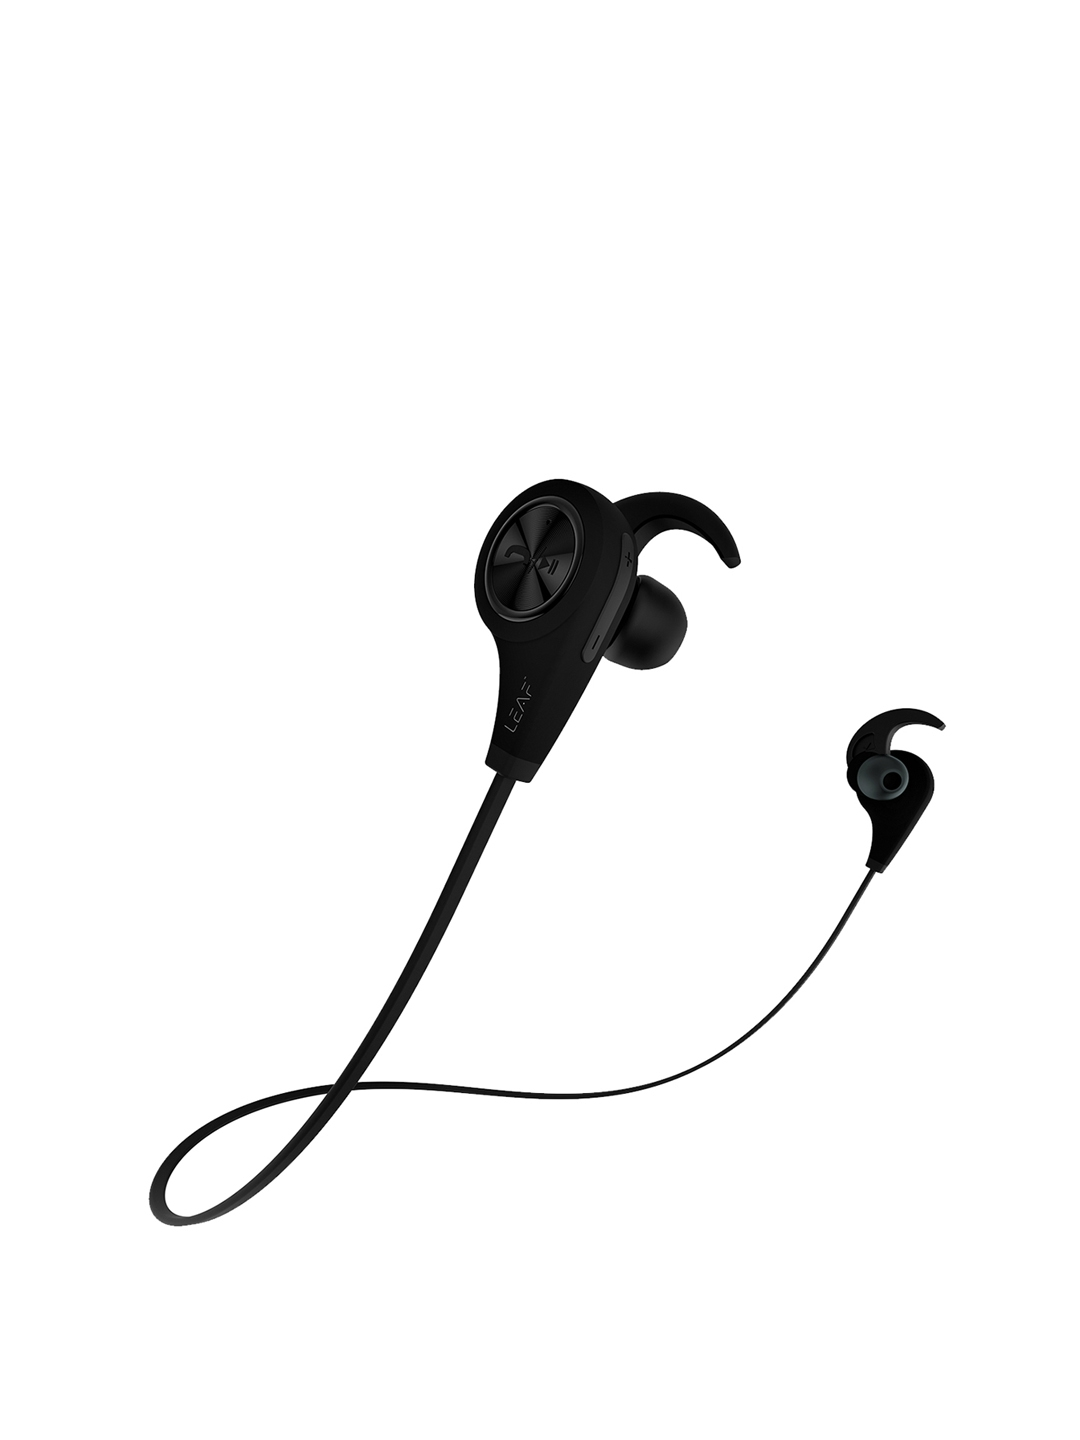 LEAF Ear Unisex Black Wireless Bluetooth Deep Bass Earphones with Mic